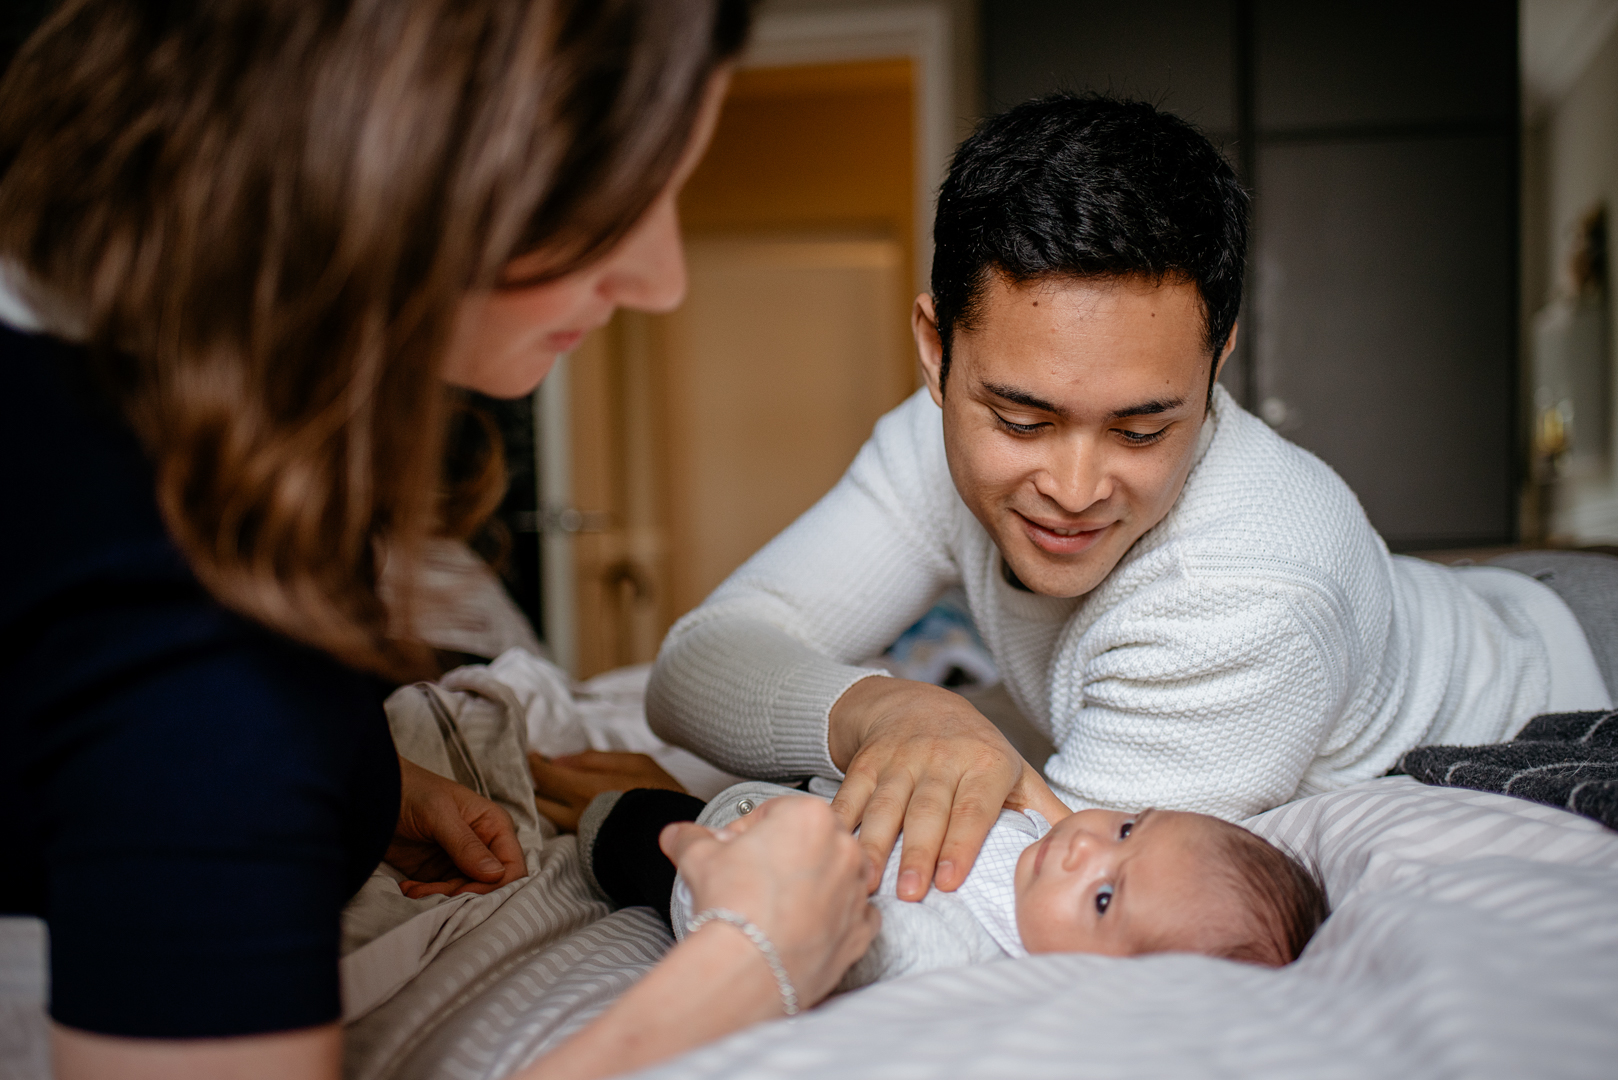 New mum and dad cuddle time with their newborn baby,newborn baby photography in Bristol by Agi Lebiedz